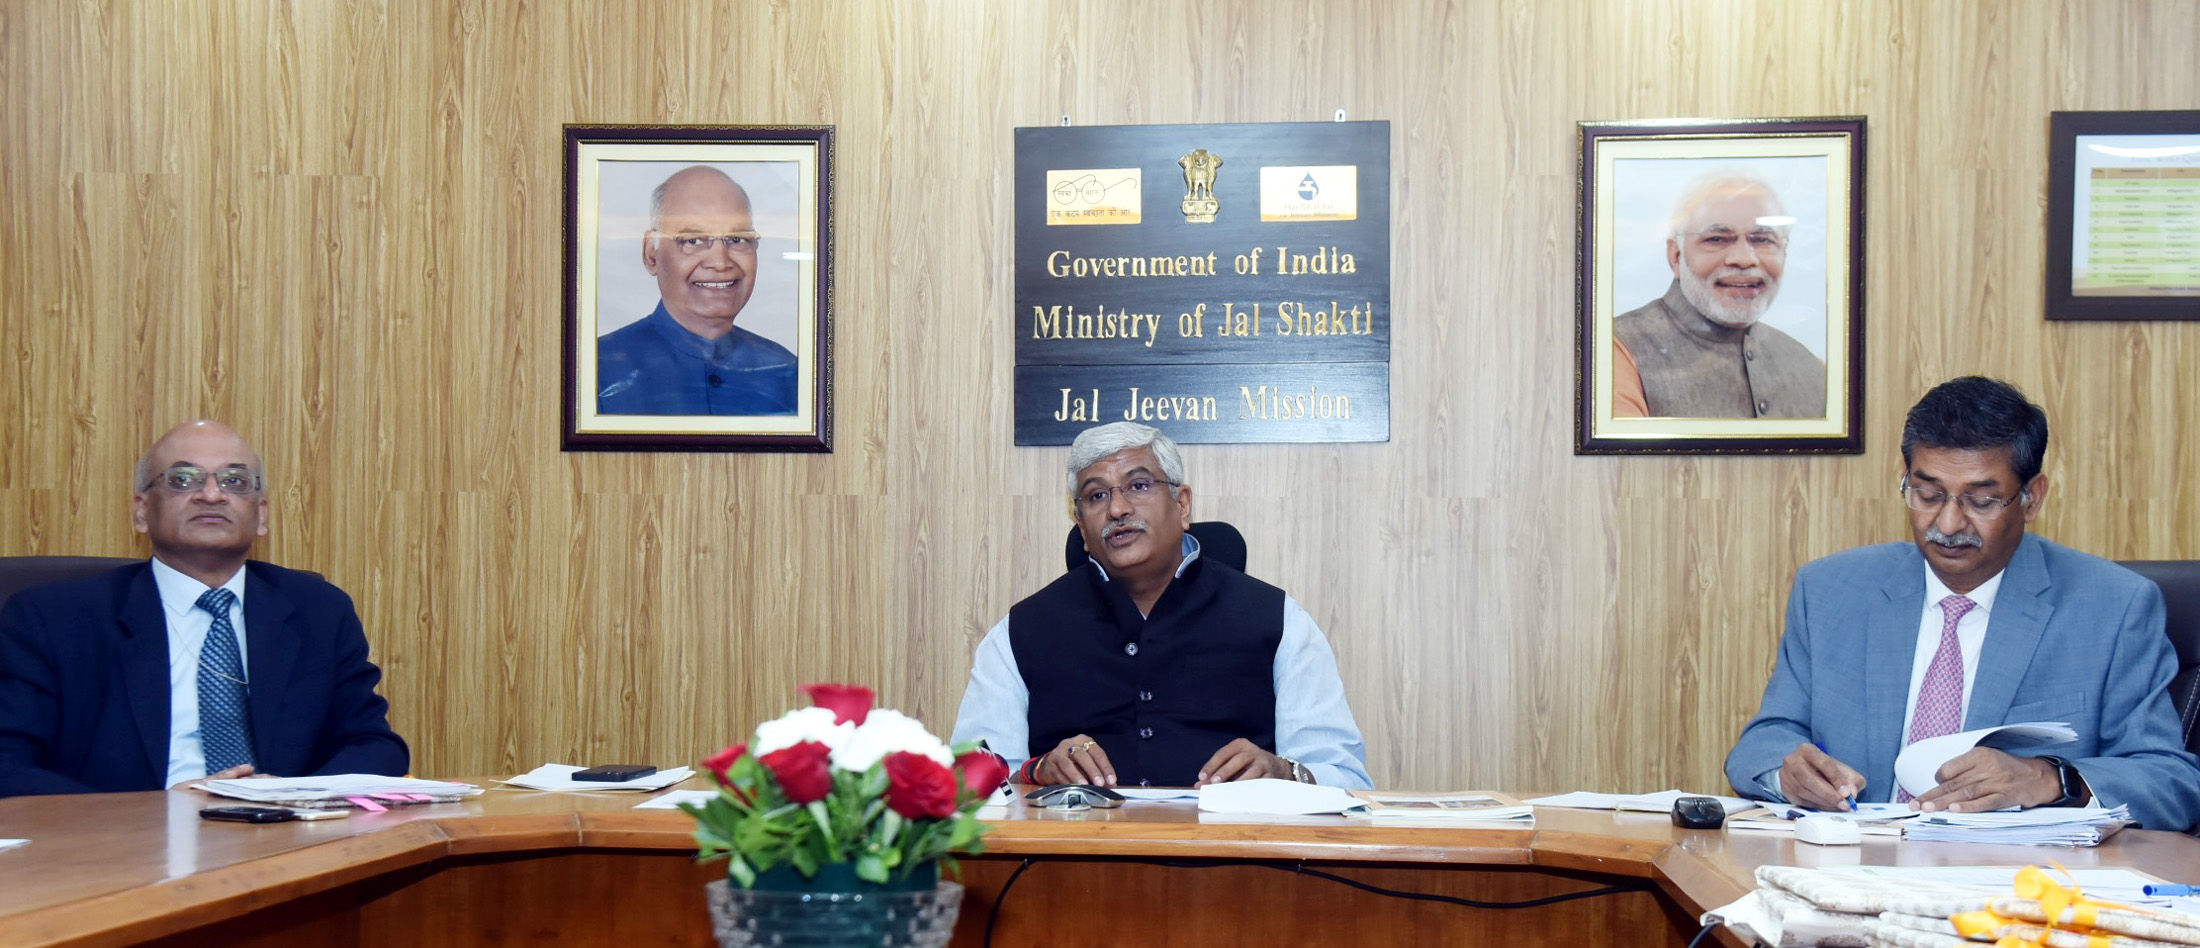 The Union Minister for Jal Shakti, Shri Gajendra Singh Shekhawat chairing a National Conference of States/ UTs Ministers on Jal Jeevan Mission, in New Delhi on March 13, 2021.<br /> The Secretary, Ministry of Jal Shakti, Shri Pankaj Kumar is also seen.